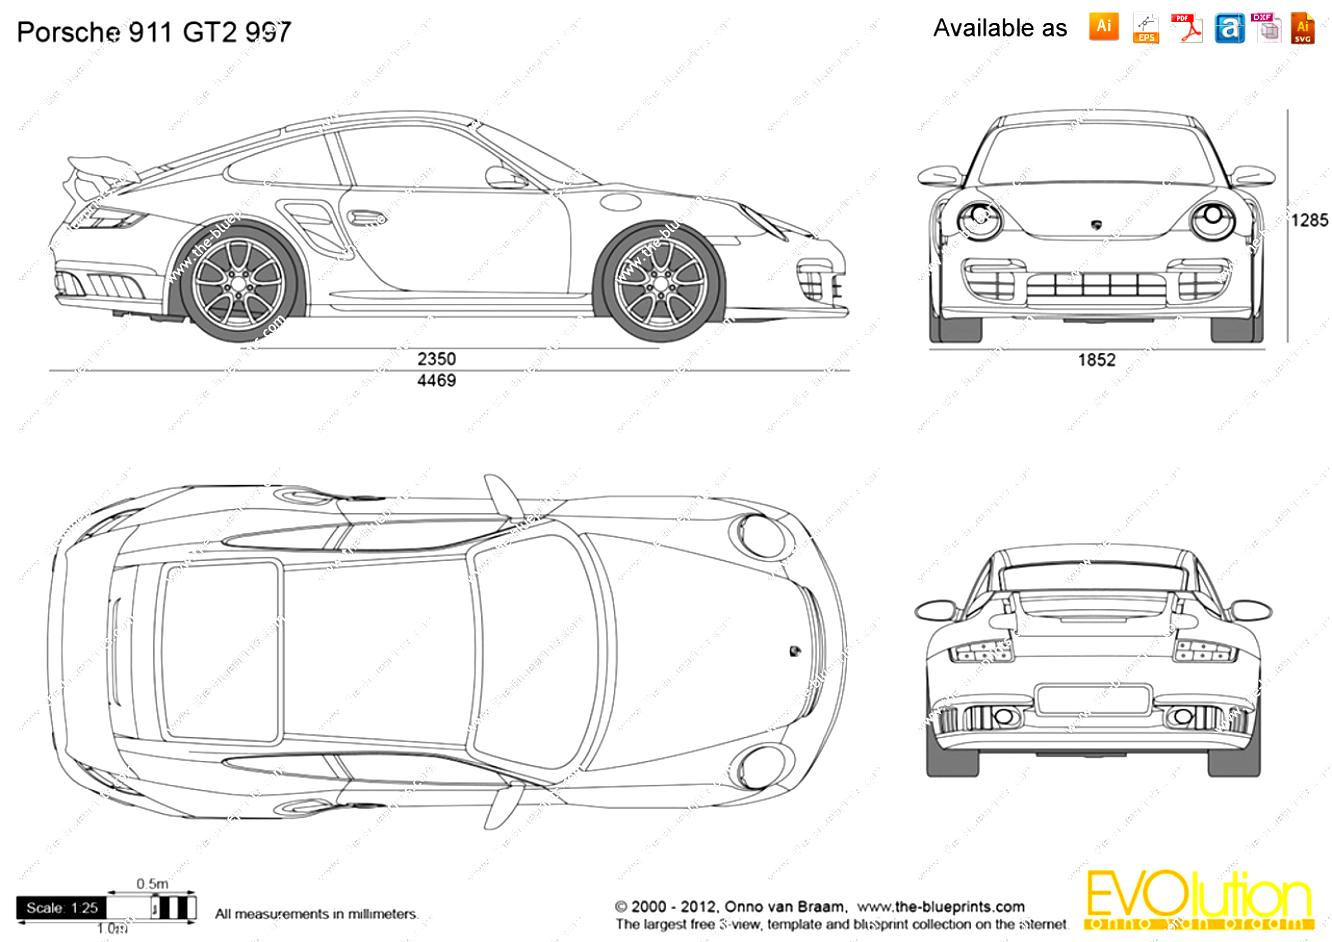 Porsche 911 GT2 997 2007 on MotoImg.com